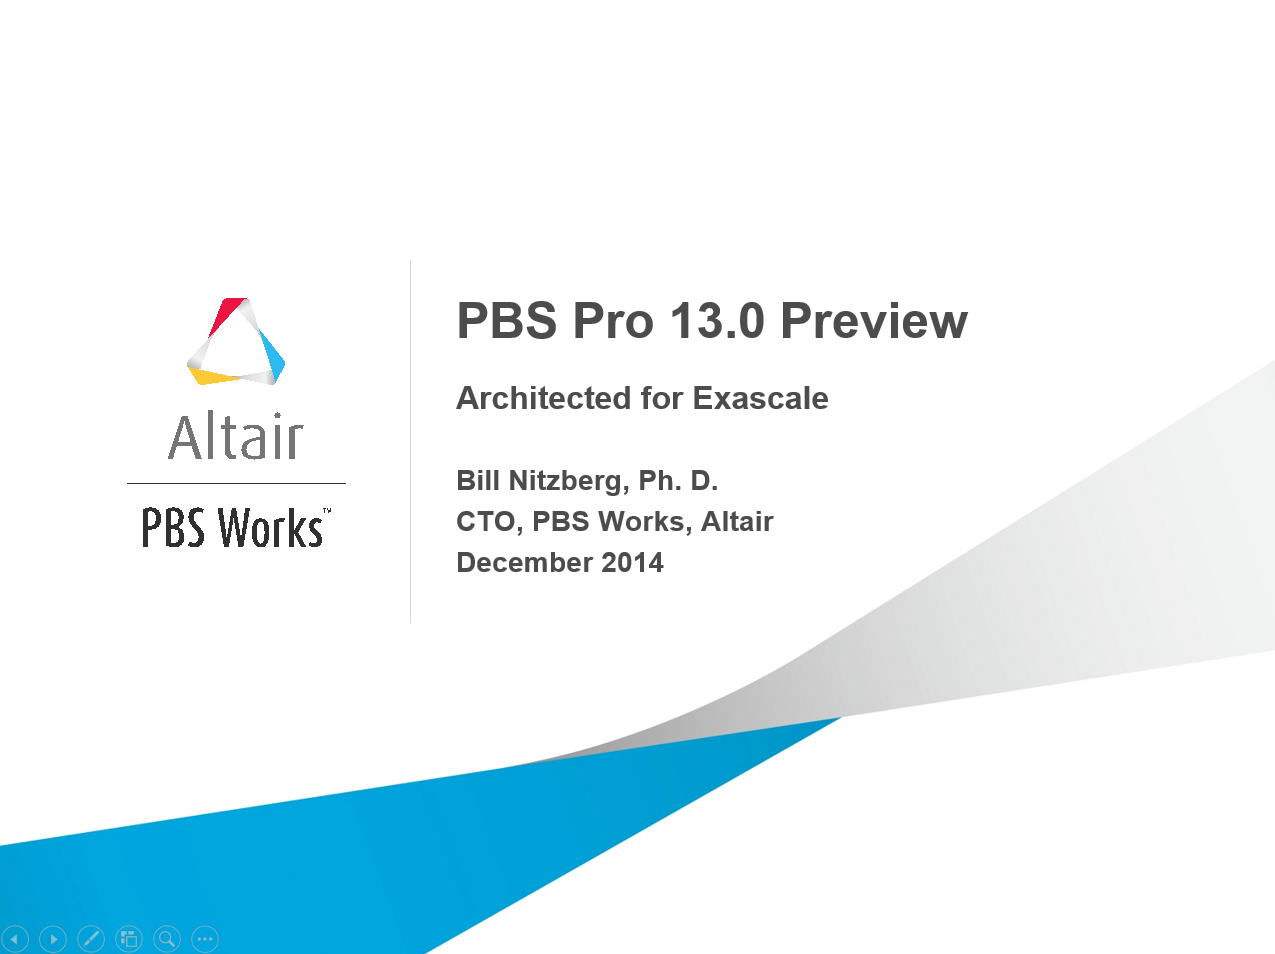 Webinar: Optimize it! PBS Professional 13.0 Preview Webinar